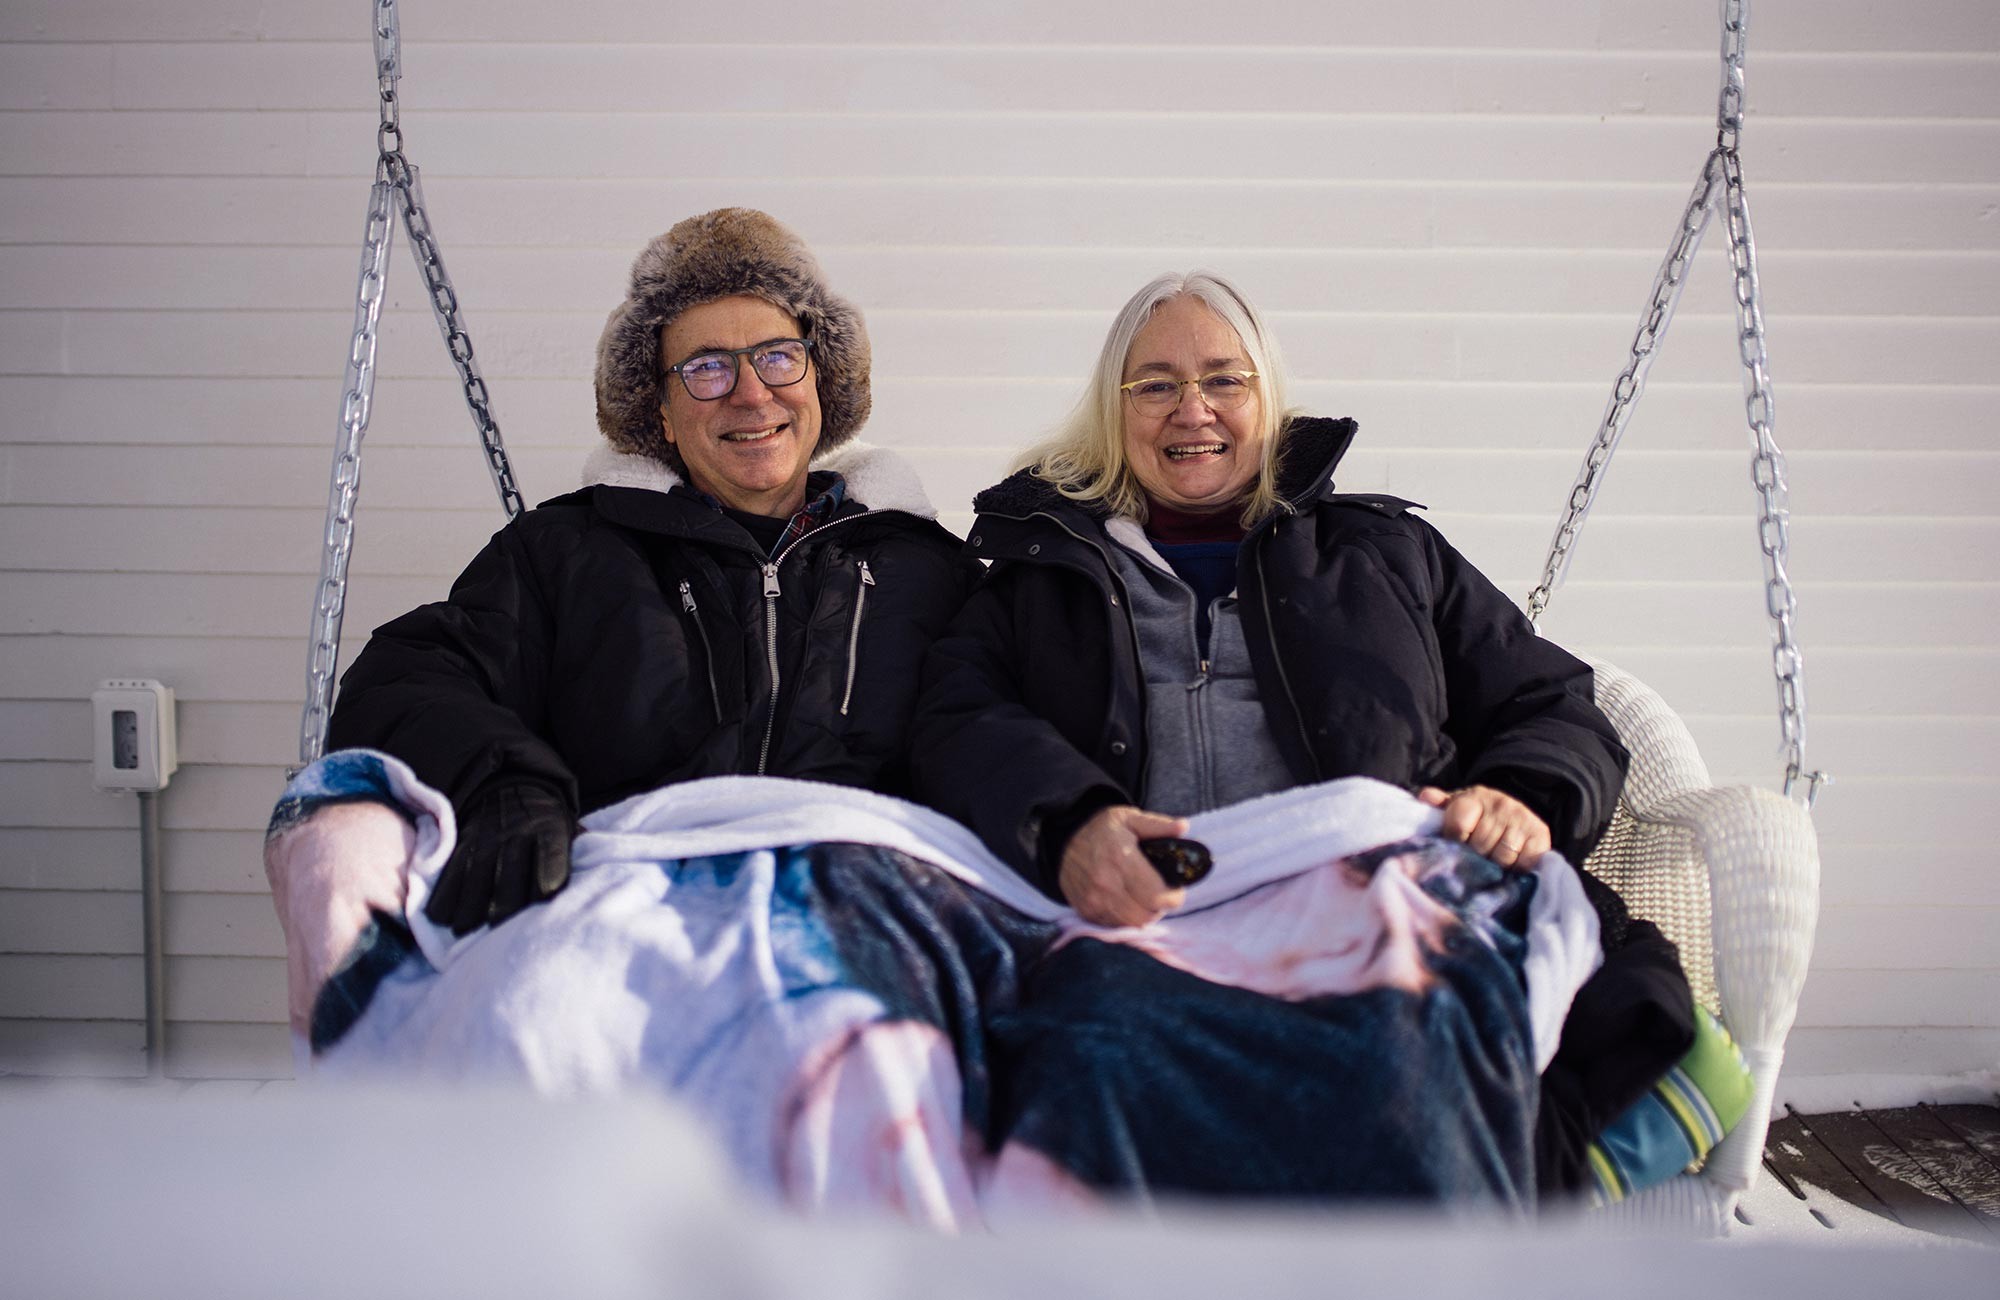 Frank Wilczek and his wife Betsy Devine sitting on a porch swing.